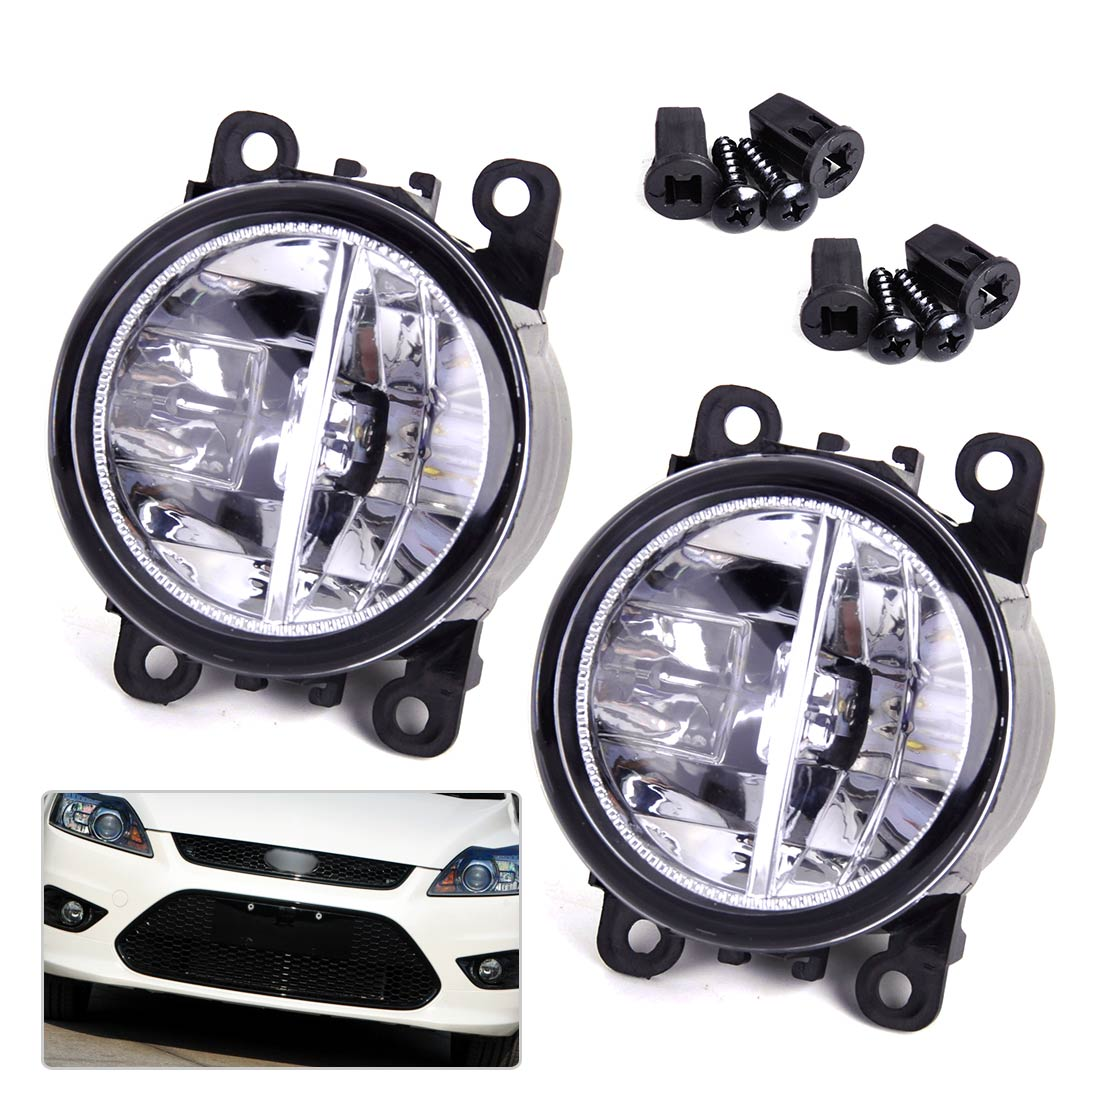 beler Right Left LED Fog Light Lamp for Ford Focus Honda Acura Lincoln Nissan Subaru Suzuki 4F9Z-15200-AA 33900STKA11 AC2592111 standing in for lincoln green